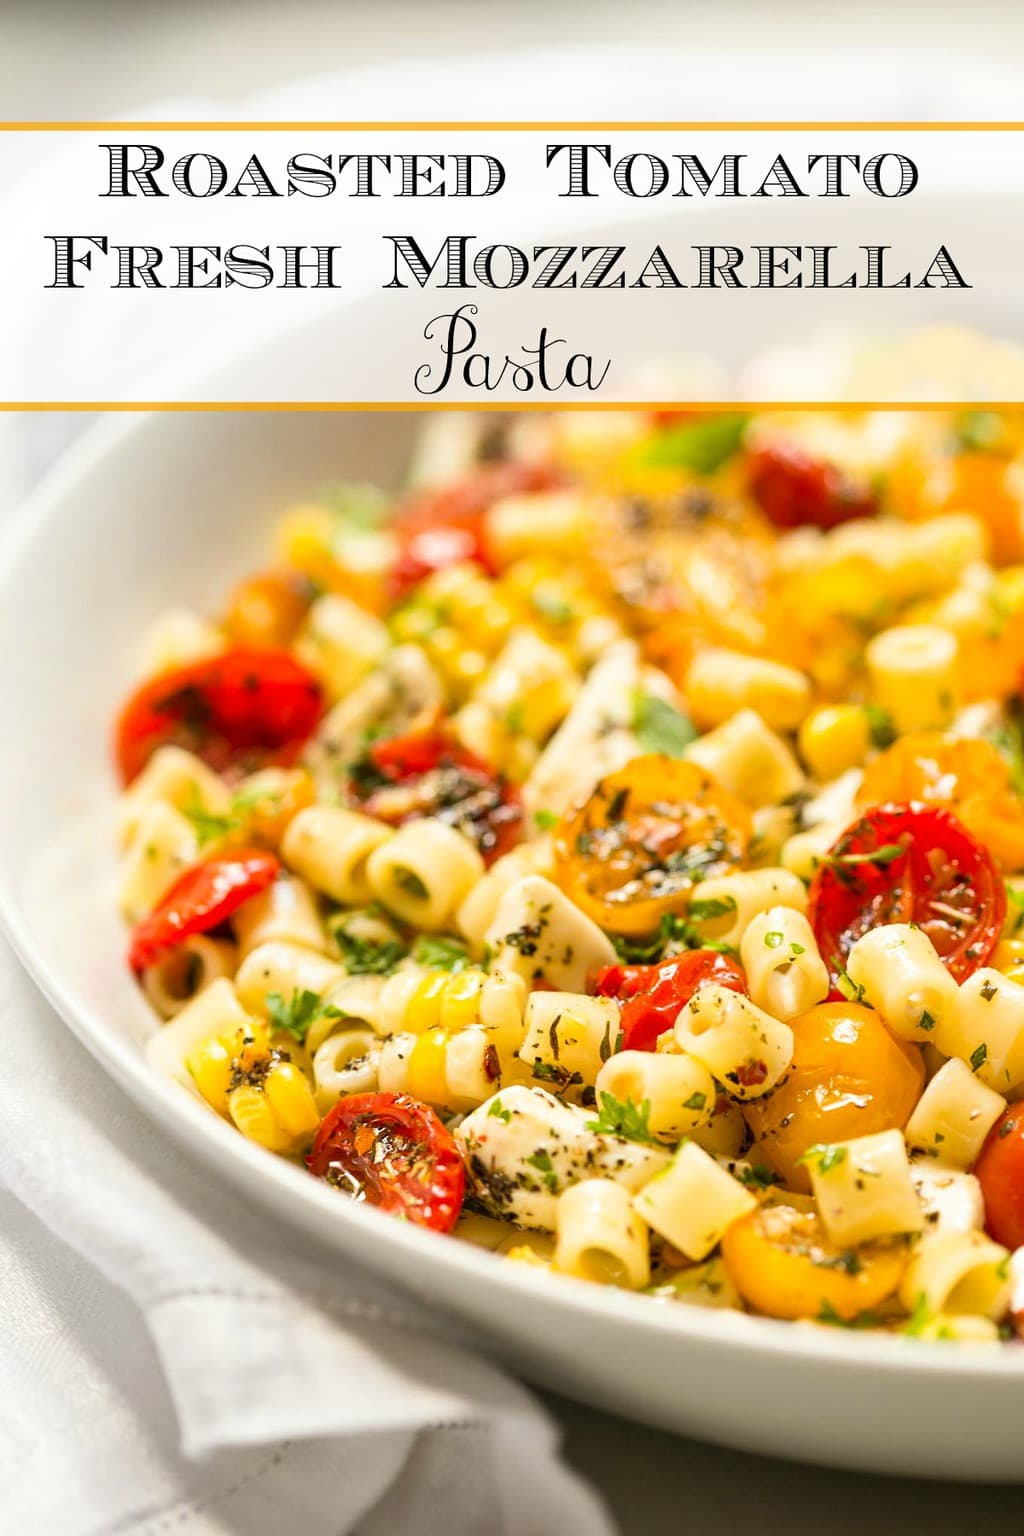 Roasted Tomato Fresh Mozzarella Pasta